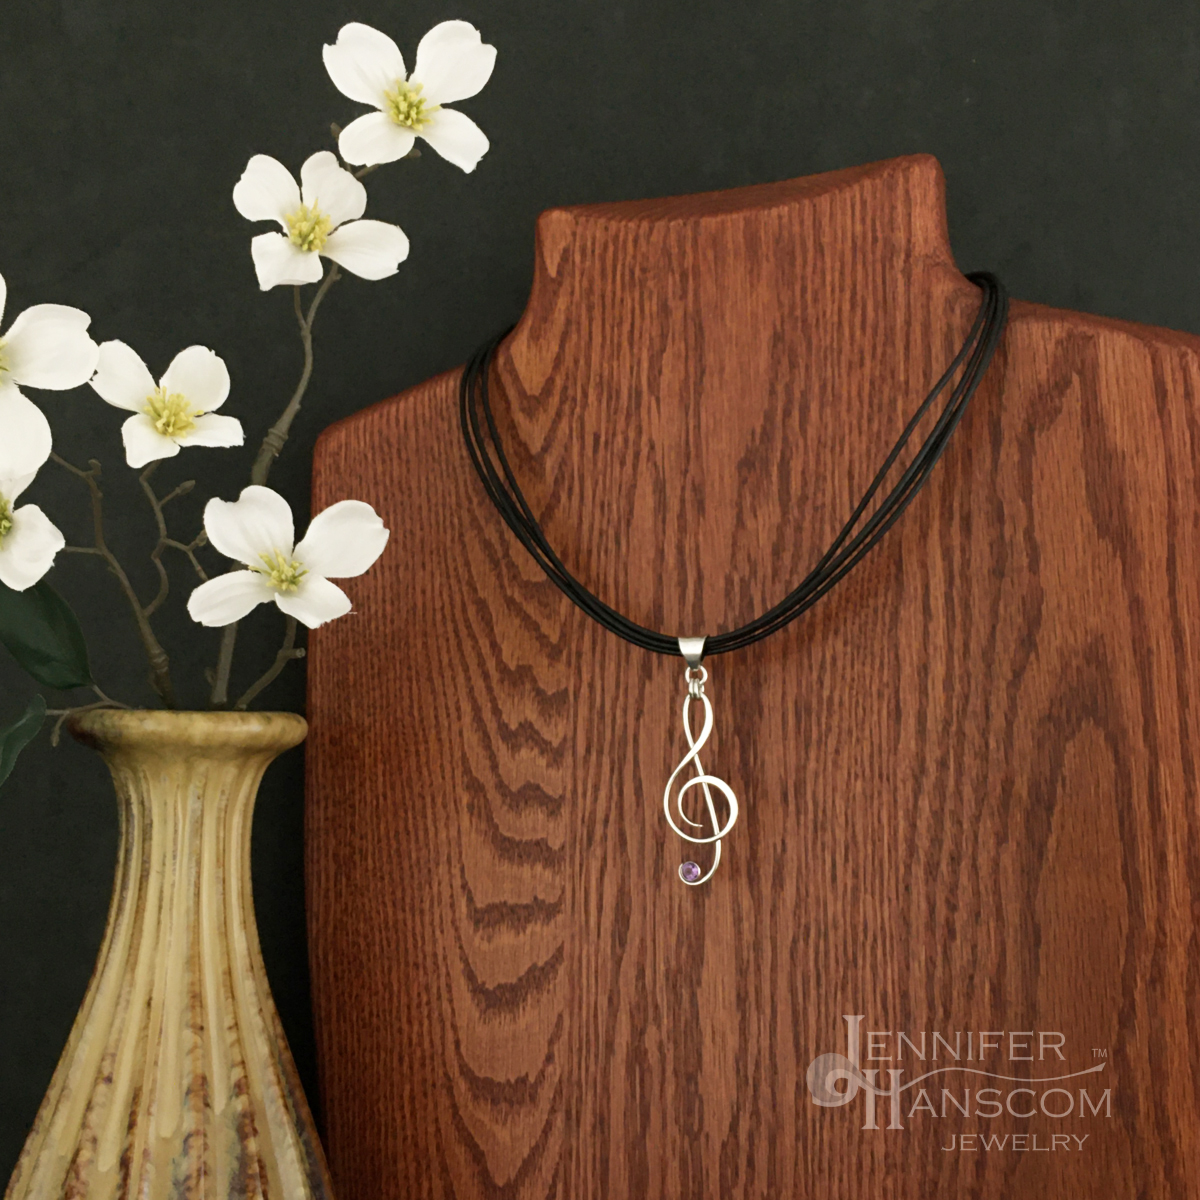 Quadruple Strand Leather Necklace with Amethyst G Clef Pendant